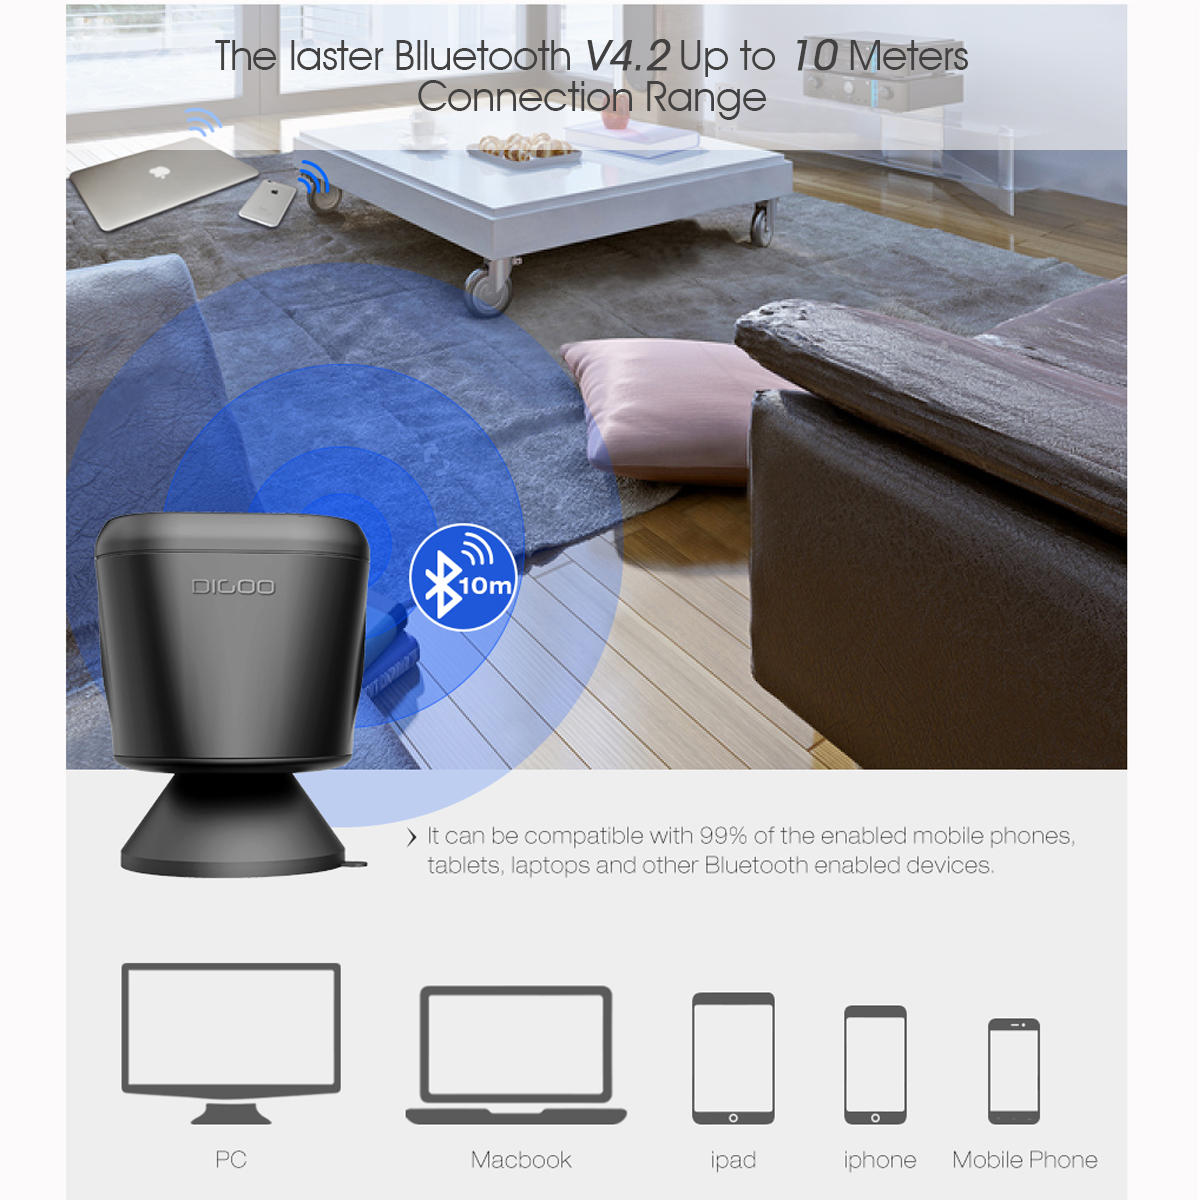 Digoo DG-MX10 Waterproof Wireless TWS Bluetooth Speaker for Home Bathroom Outdoor Party Beach with 3W Enhanced Bass, Bulit-in Mic, Sunction Cup